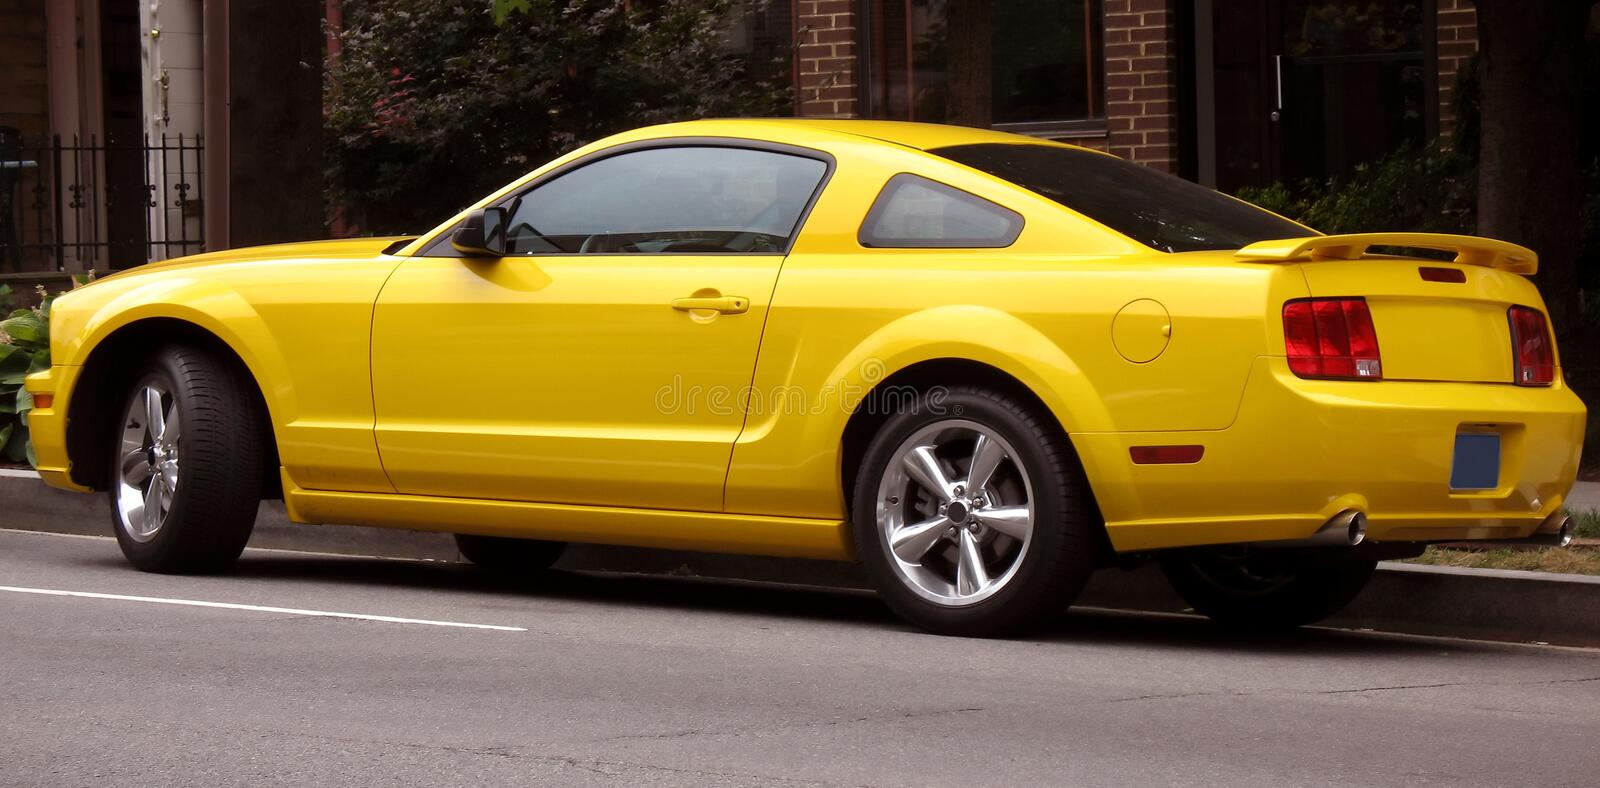 mustang fastback obrazy royalty free